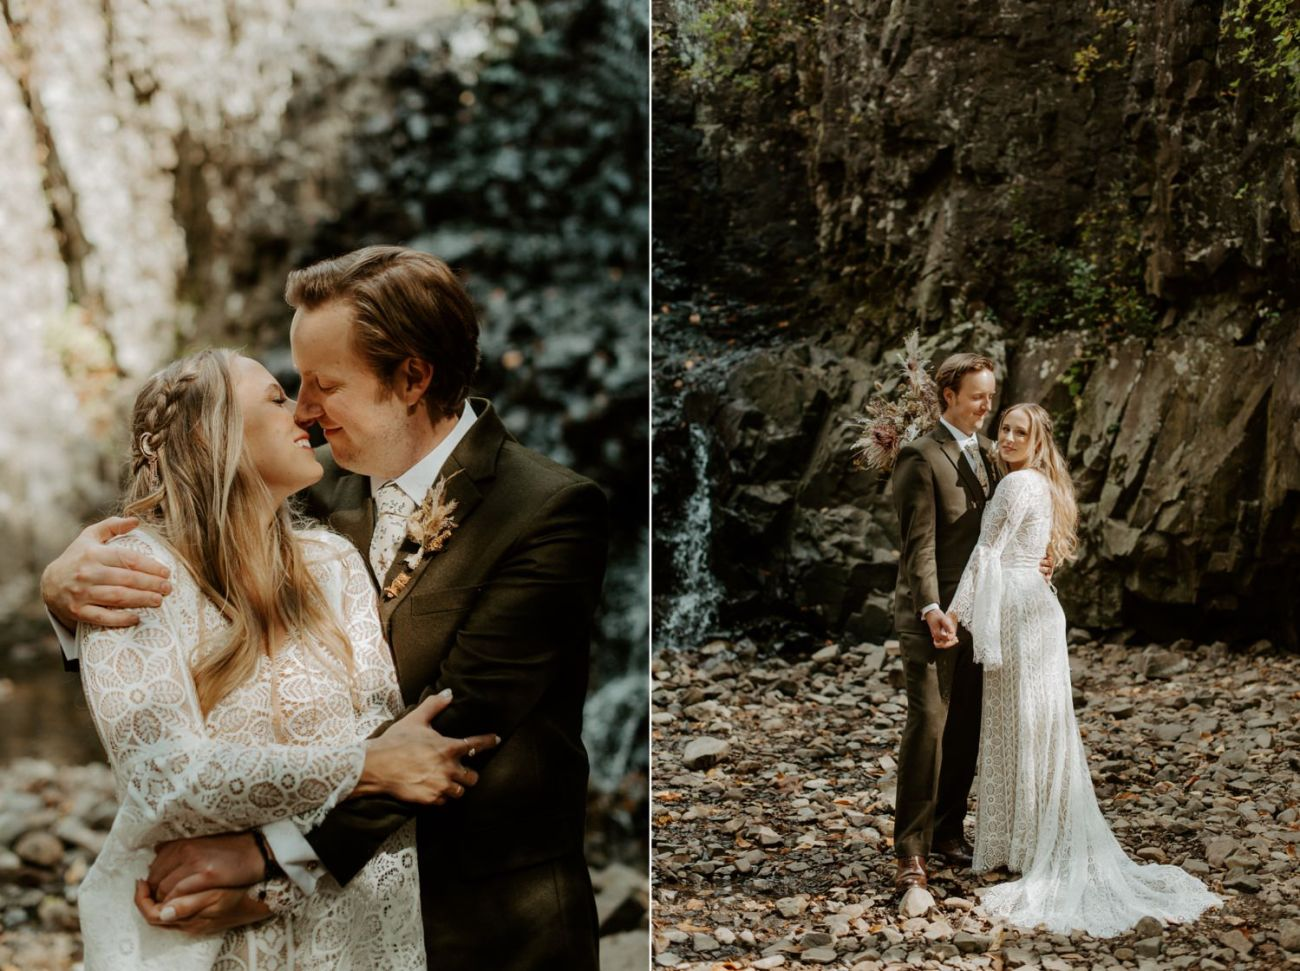 New Jersey Backyard Wedding Vintage Boho Wedding Hemlock Falls NJ Bend Oregon Wedding Phtographer Anais Possamai Photography 009